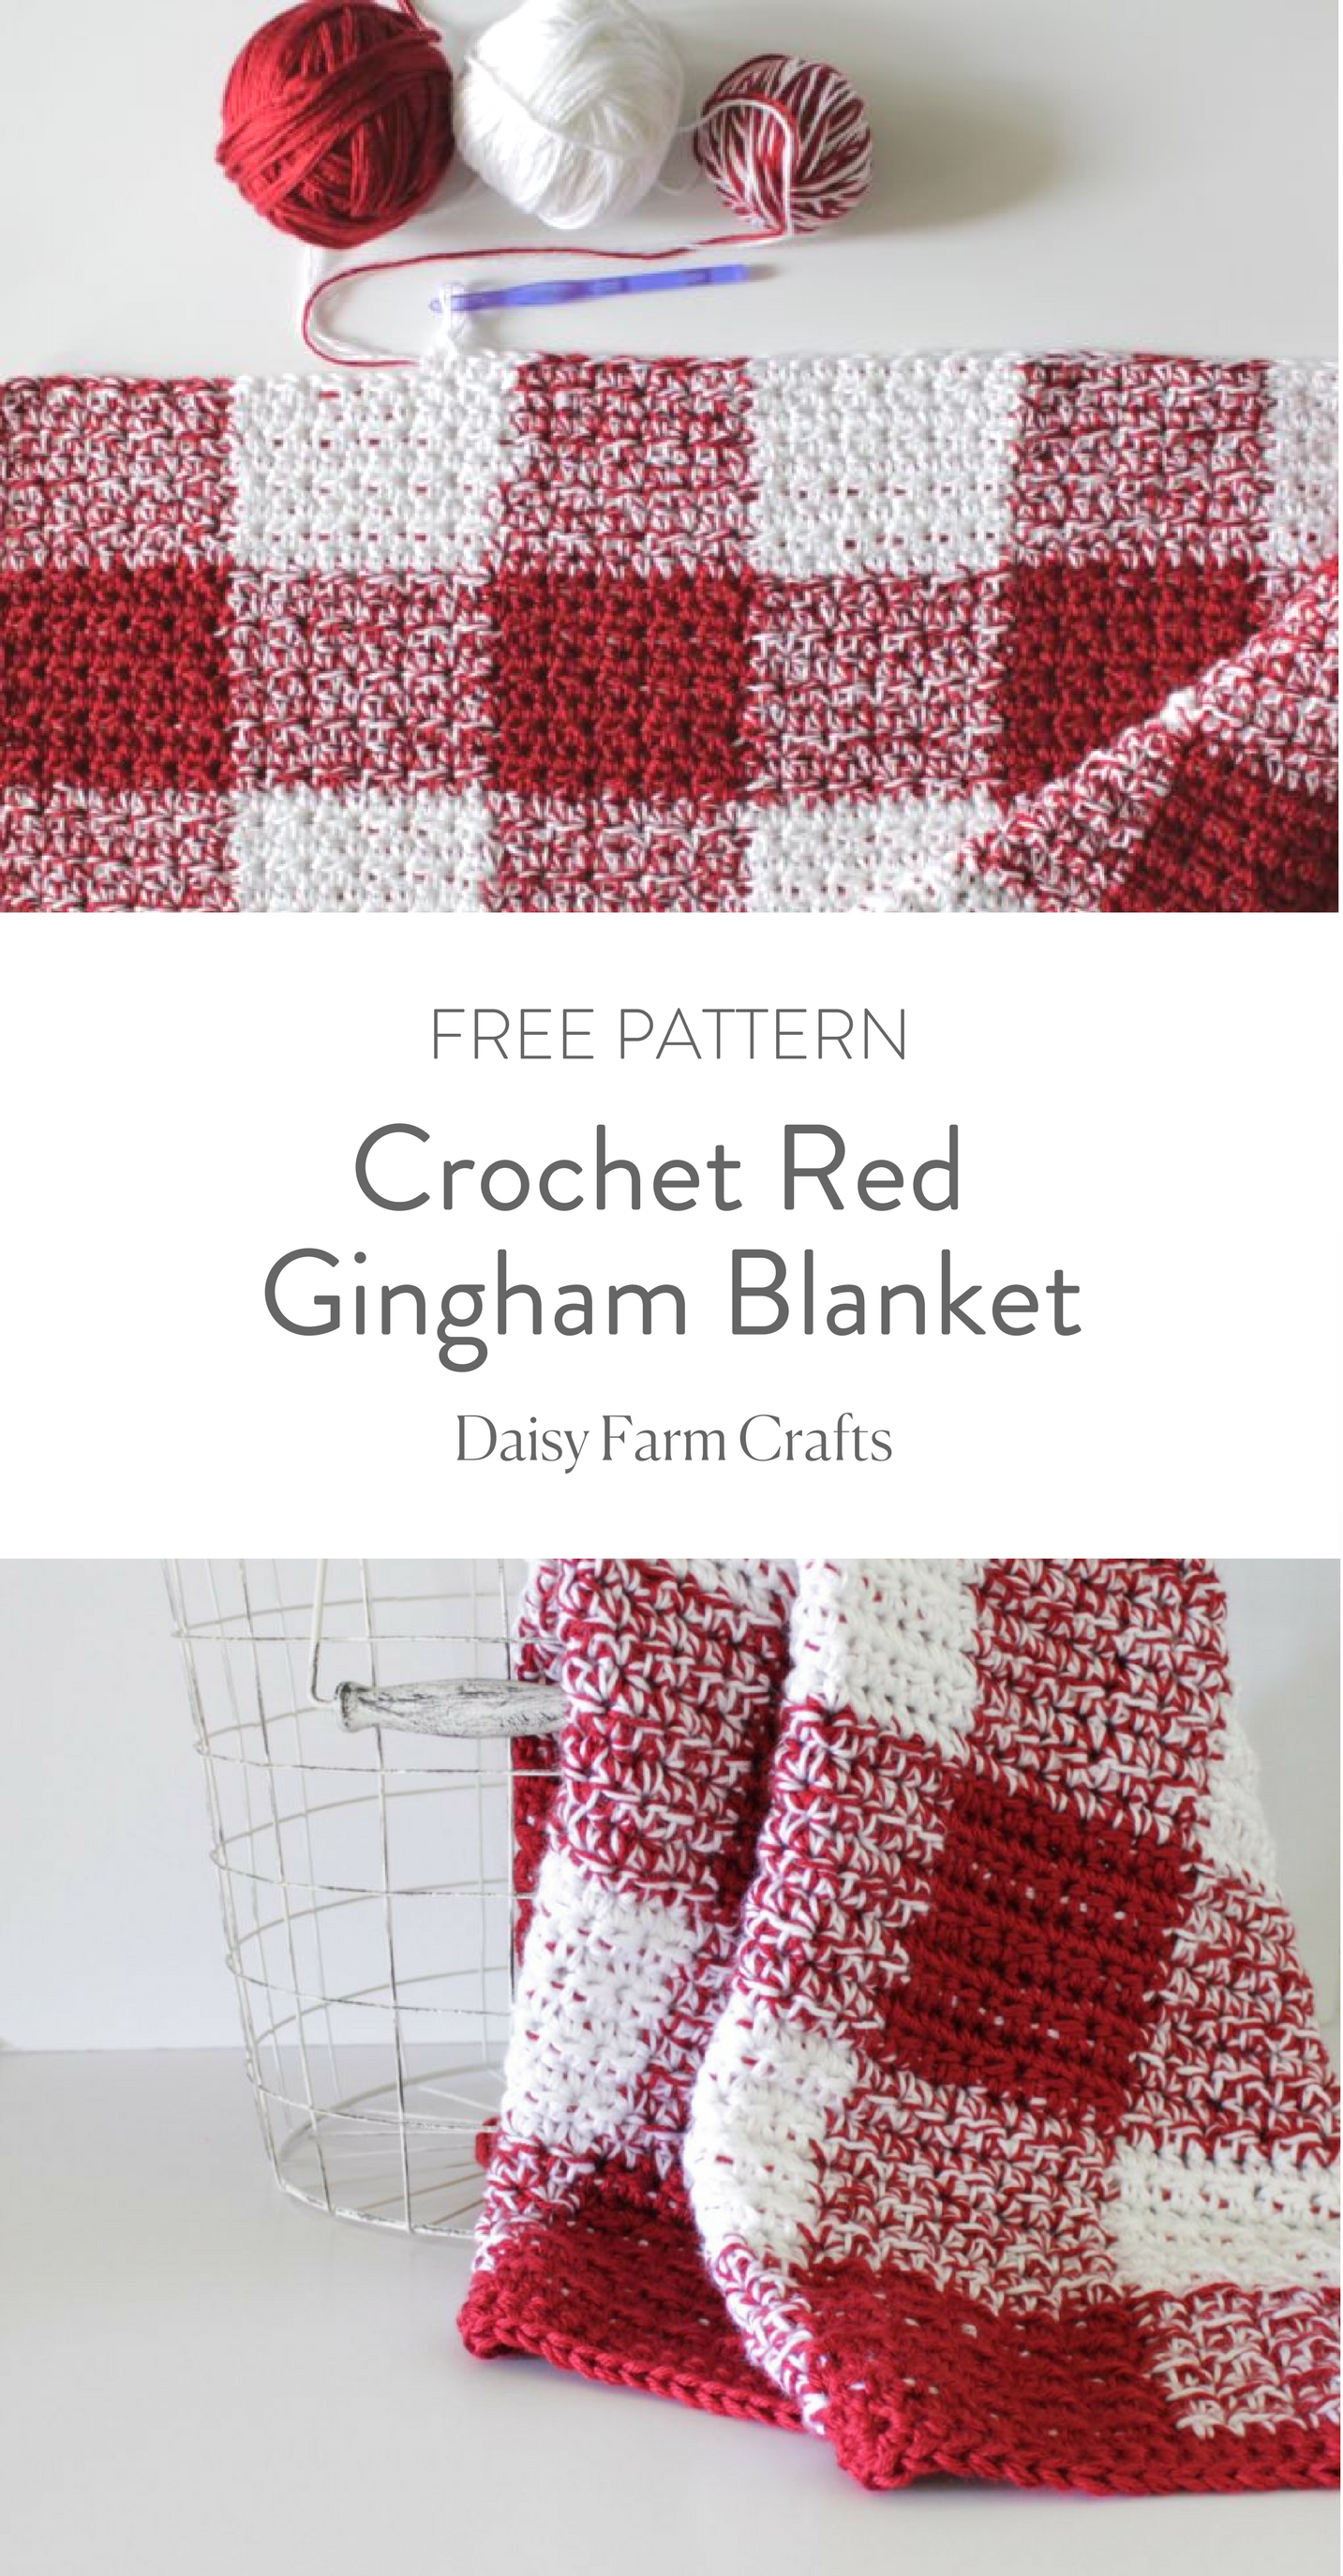 Crochet Red Gingham Blanket - Free Pattern | Crochet | Pinterest ...